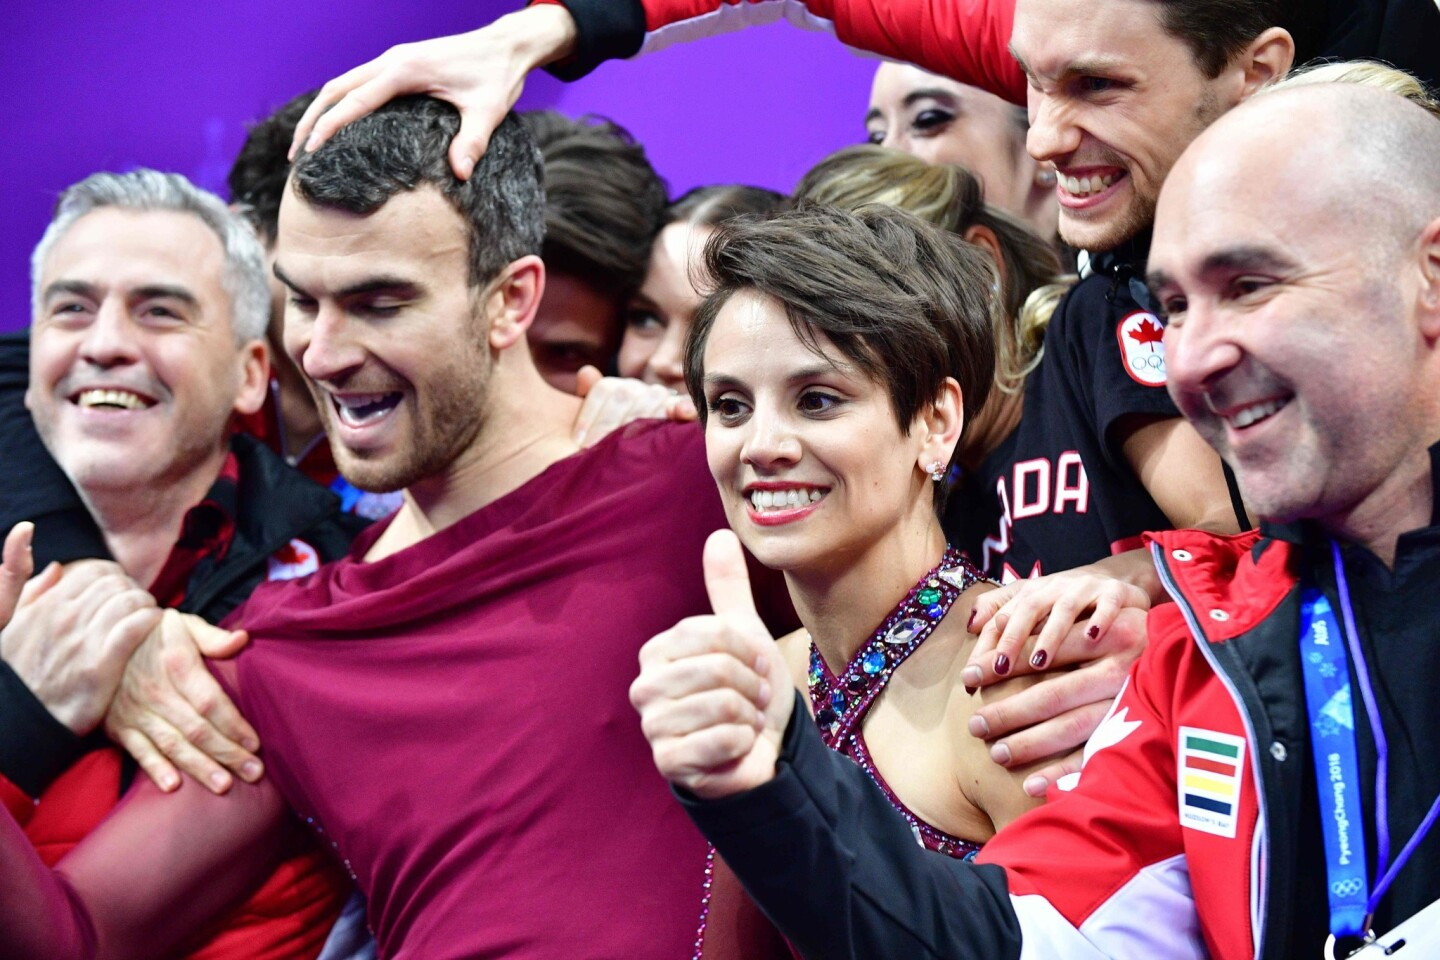 TOPSHOT - Canada's Meagan Duhamel (centre R) and Canada's Eric Radford (centre L) react after competing in the figure skating team event pair skating free skating during the Pyeongchang 2018 Winter Olympic Games at the Gangneung Ice Arena in Gangneung on February 11, 2018. / AFP PHOTO / Mladen ANTONOVMLADEN ANTONOV/AFP/Getty Images ** OUTS - ELSENT, FPG, CM - OUTS * NM, PH, VA if sourced by CT, LA or MoD **